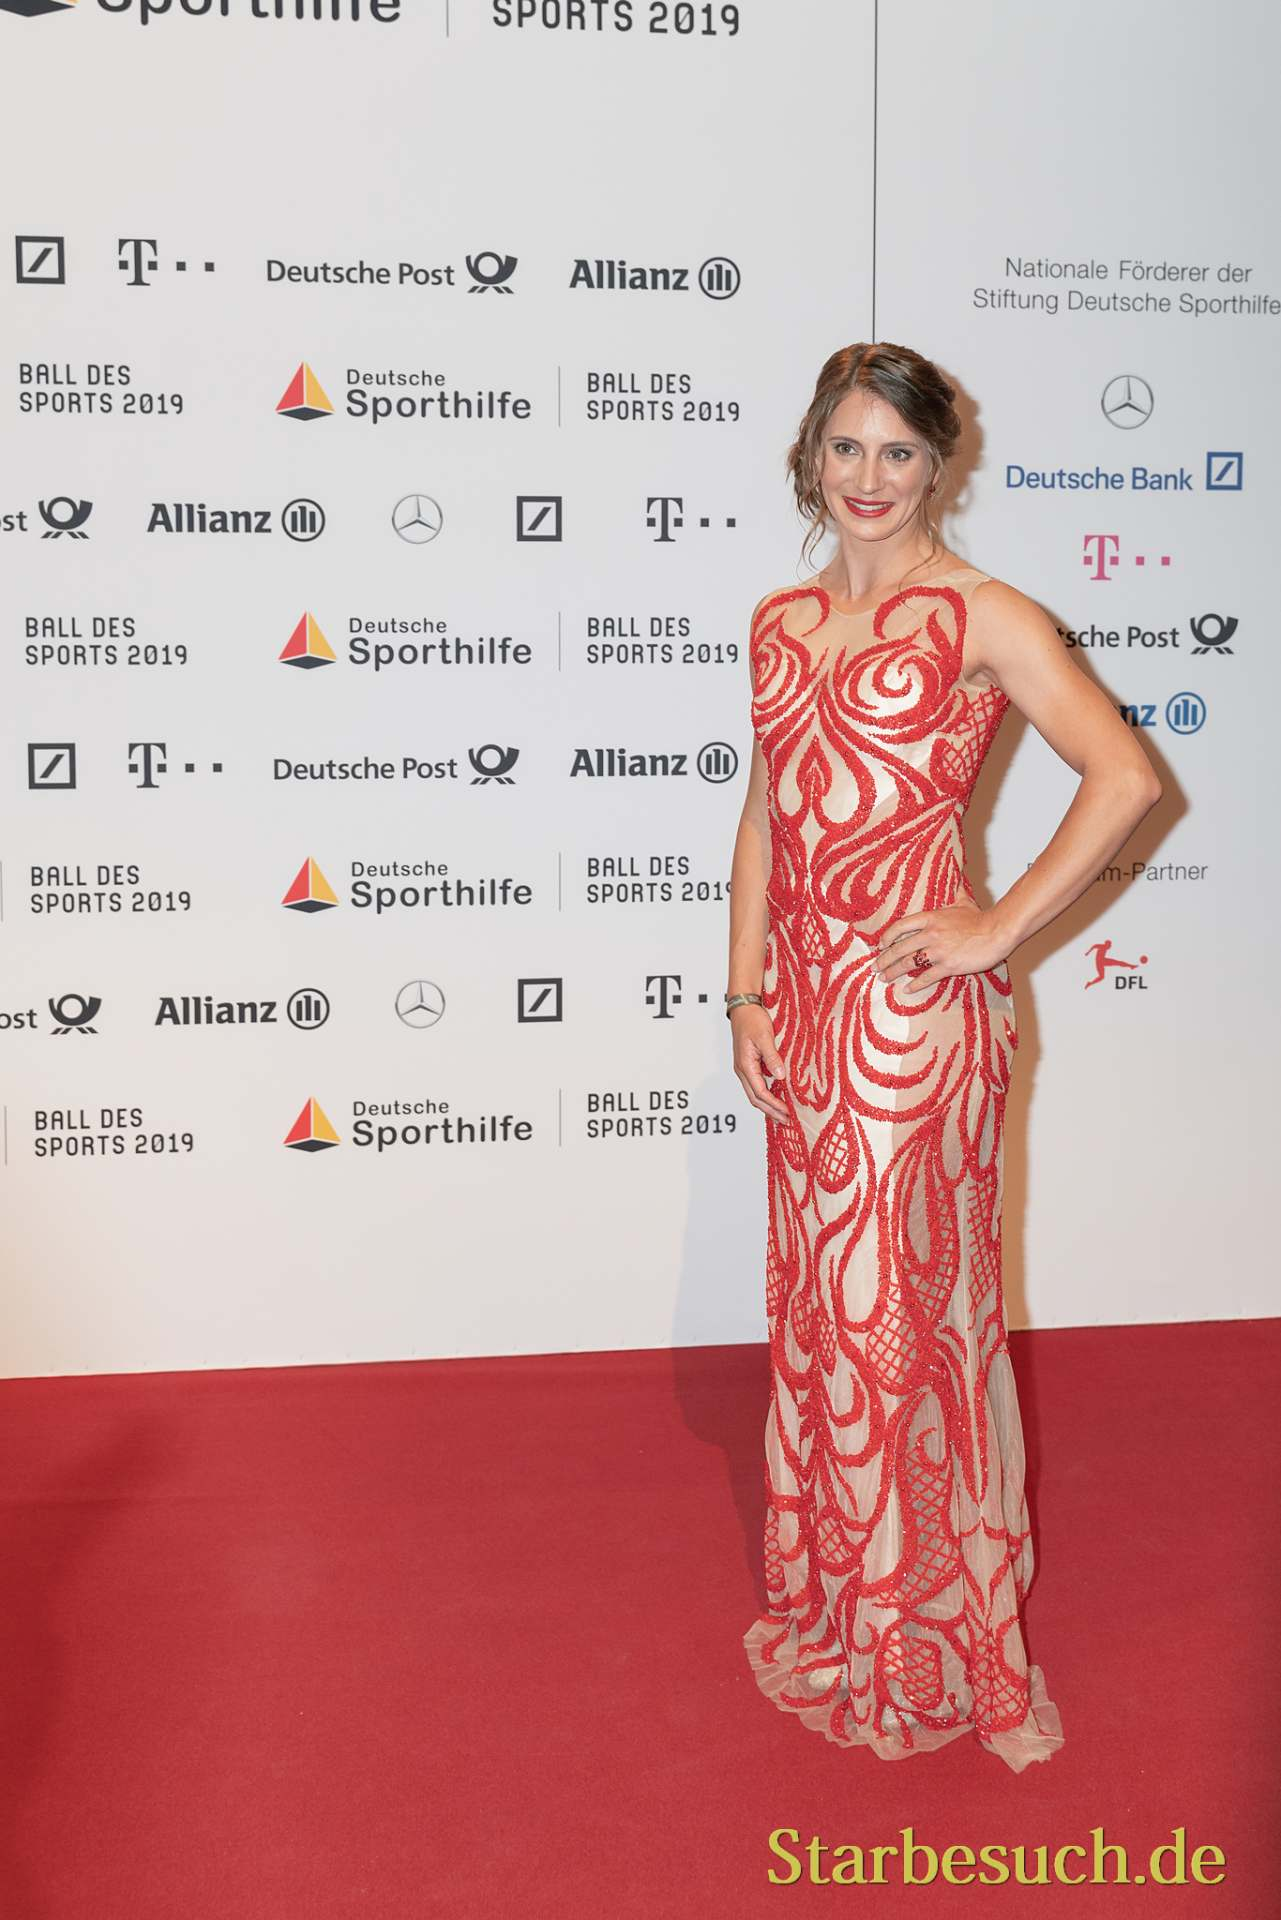 WIESBADEN, Germany - February 2nd, 2019: Miriam Welte (*1986, German cyclist) at Ball des Sports 2019